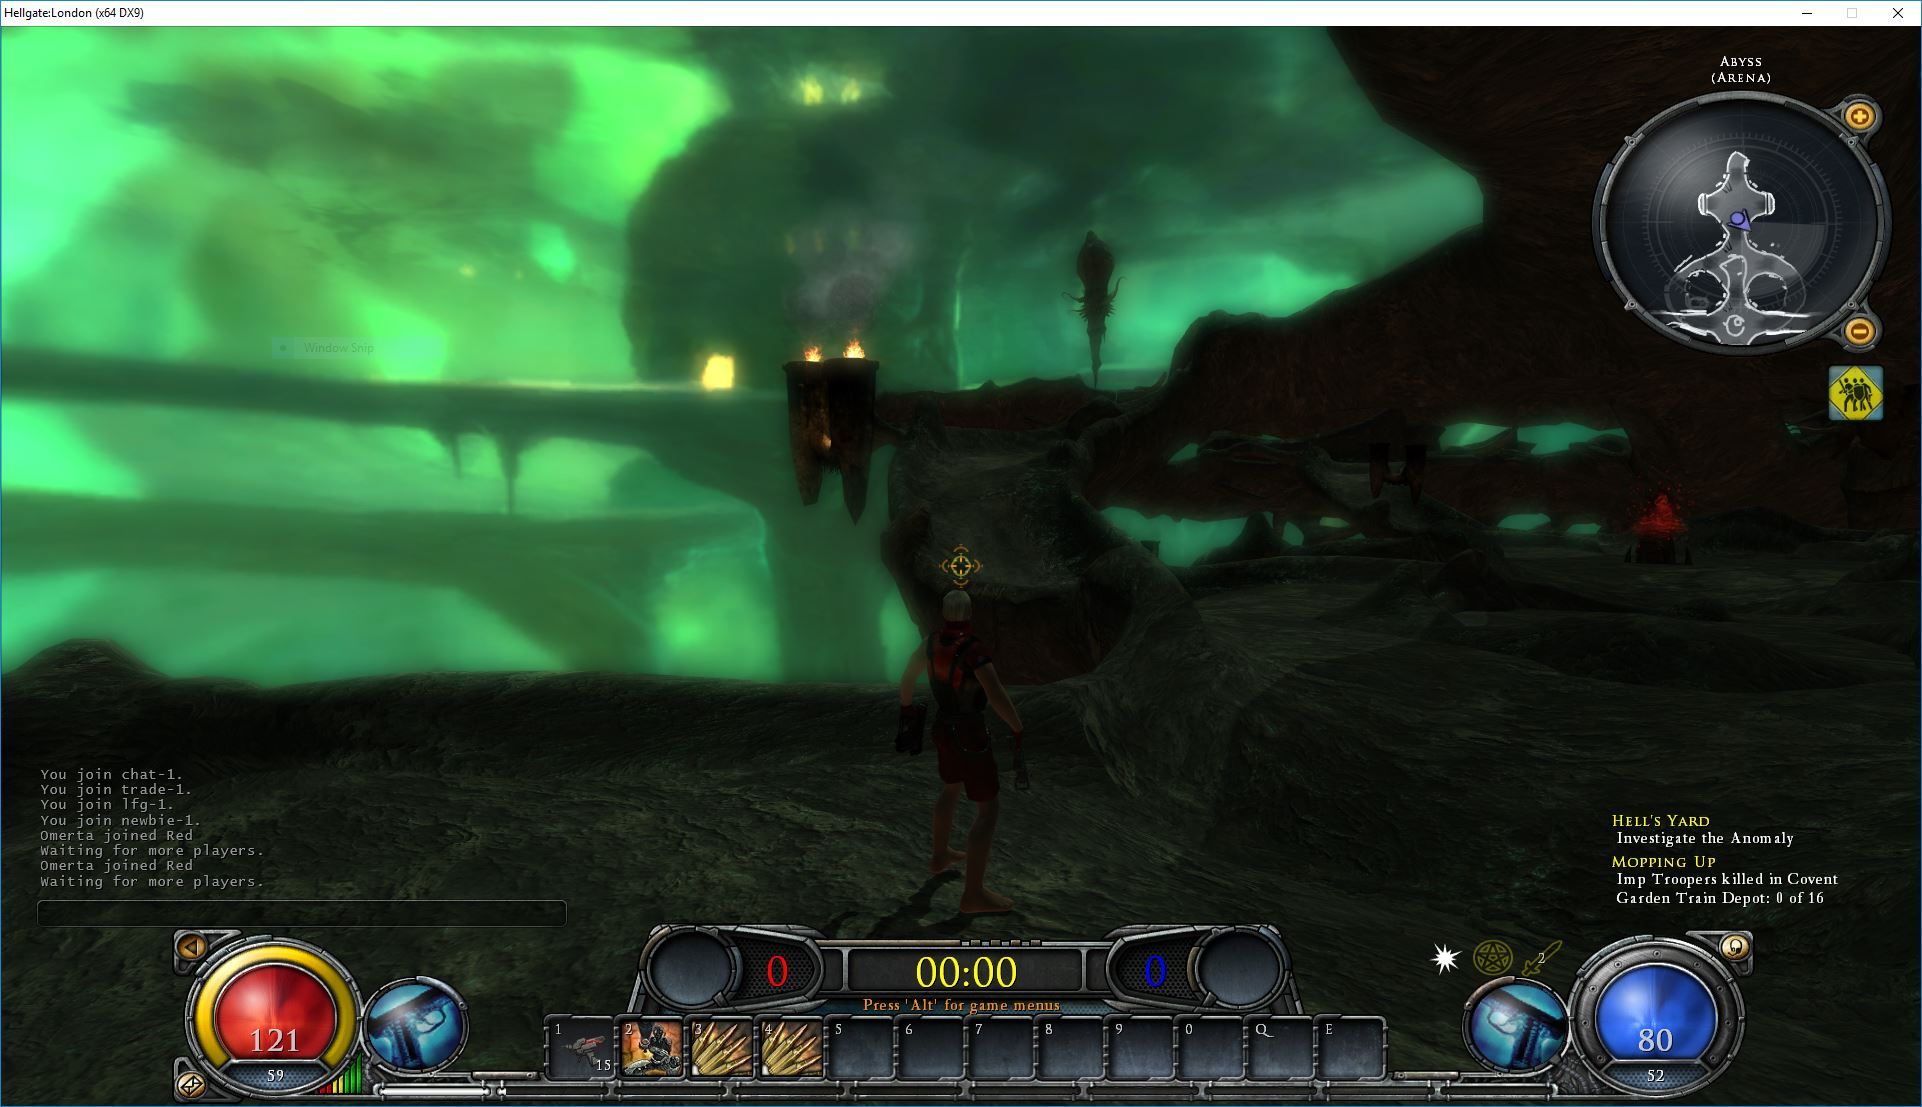 Abyss Image Hellgate Revival London 2038 Mod For Hellgate London